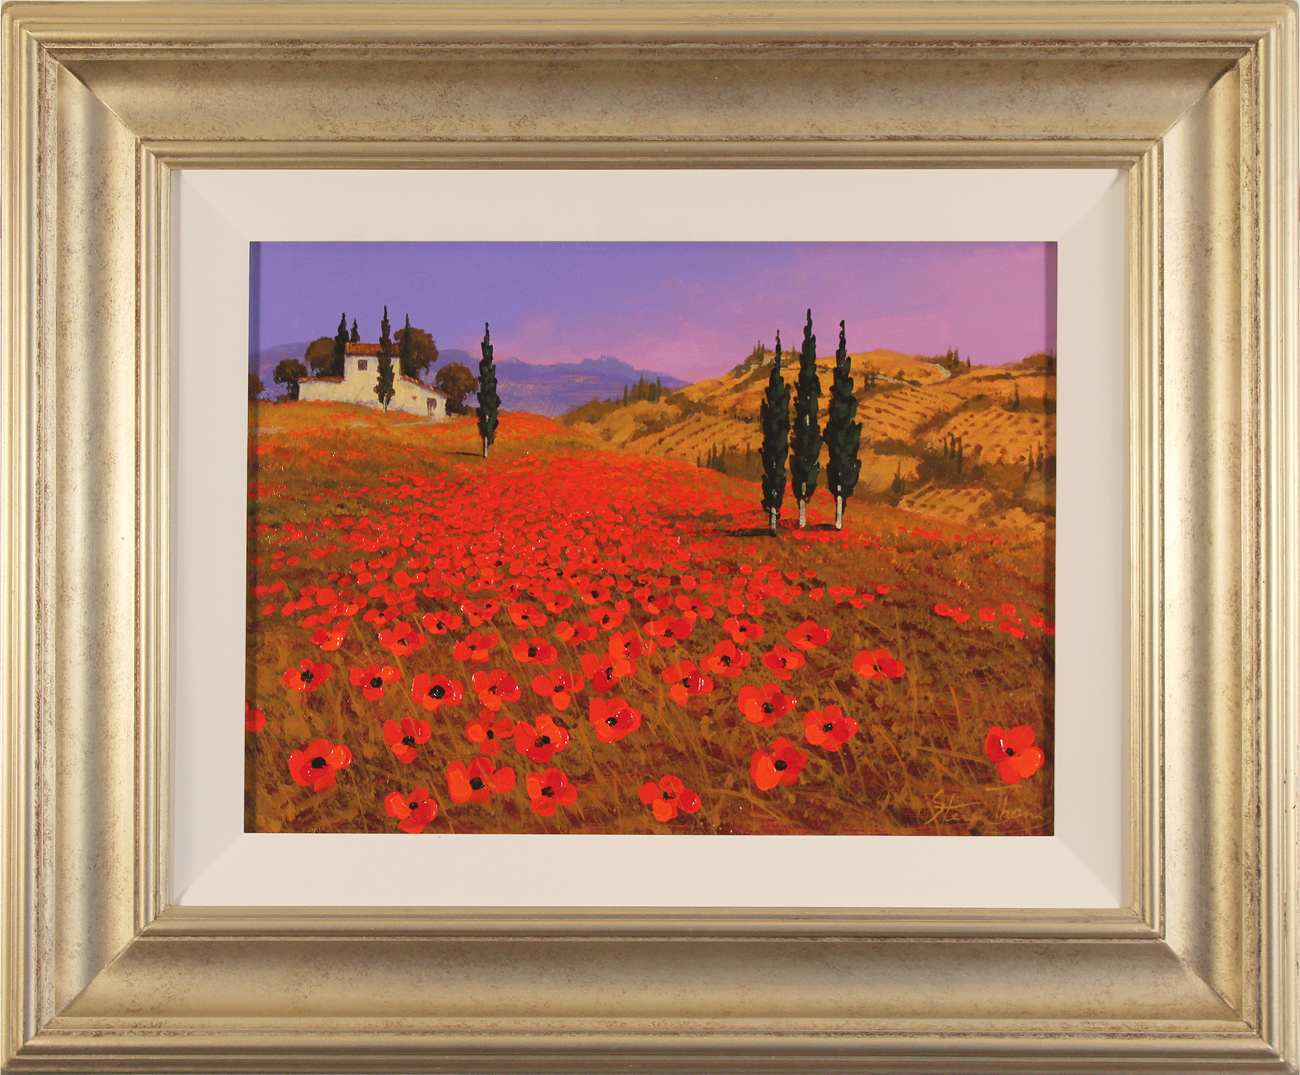 Steve Thoms, Original oil painting on panel, Tuscan Fields  Click to enlarge